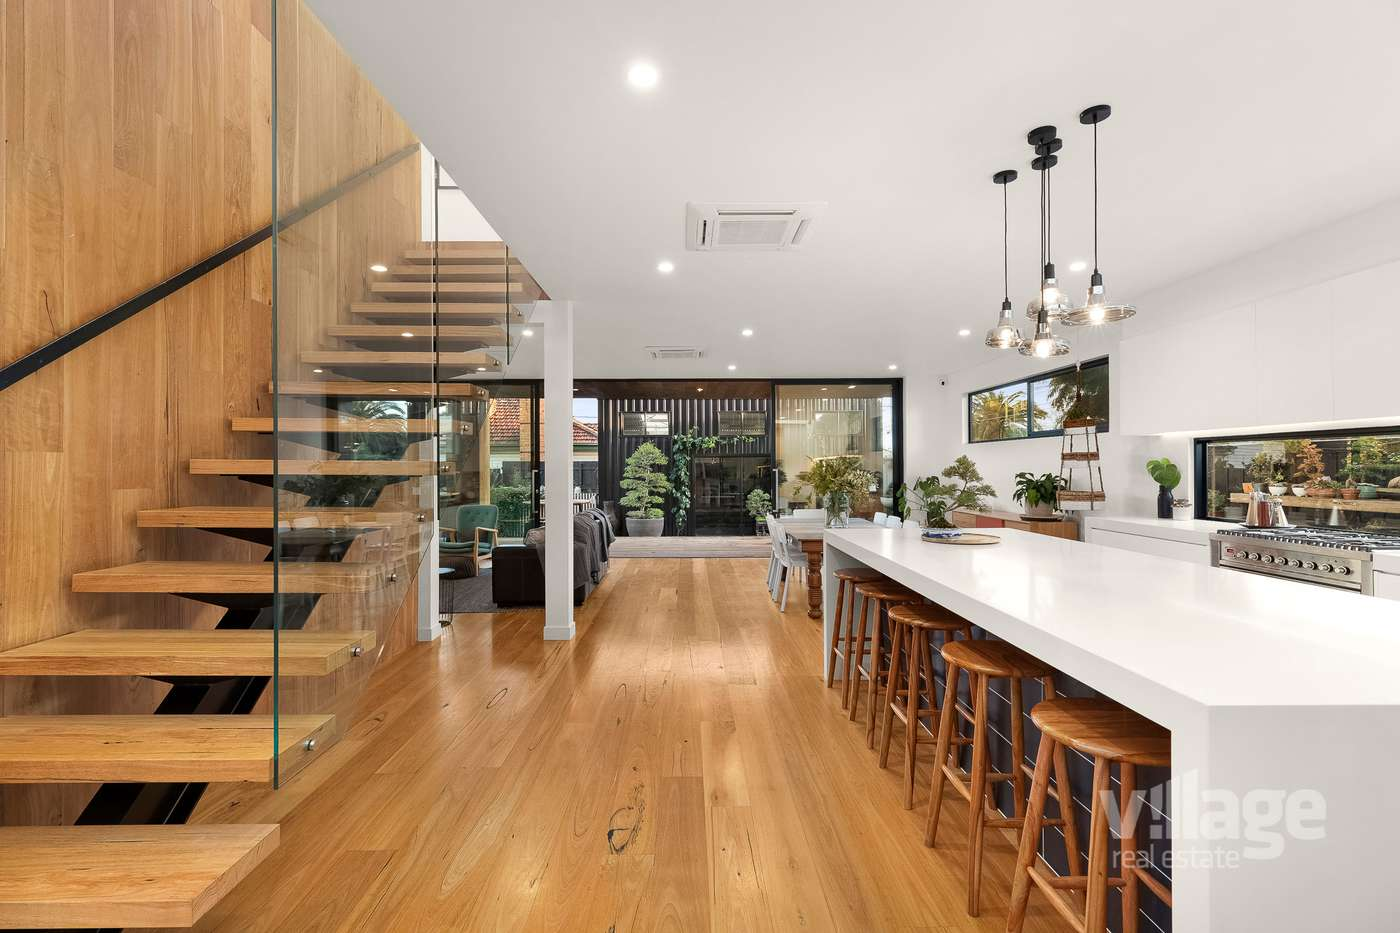 Main view of Homely house listing, 53 Drew Street, Yarraville, VIC 3013